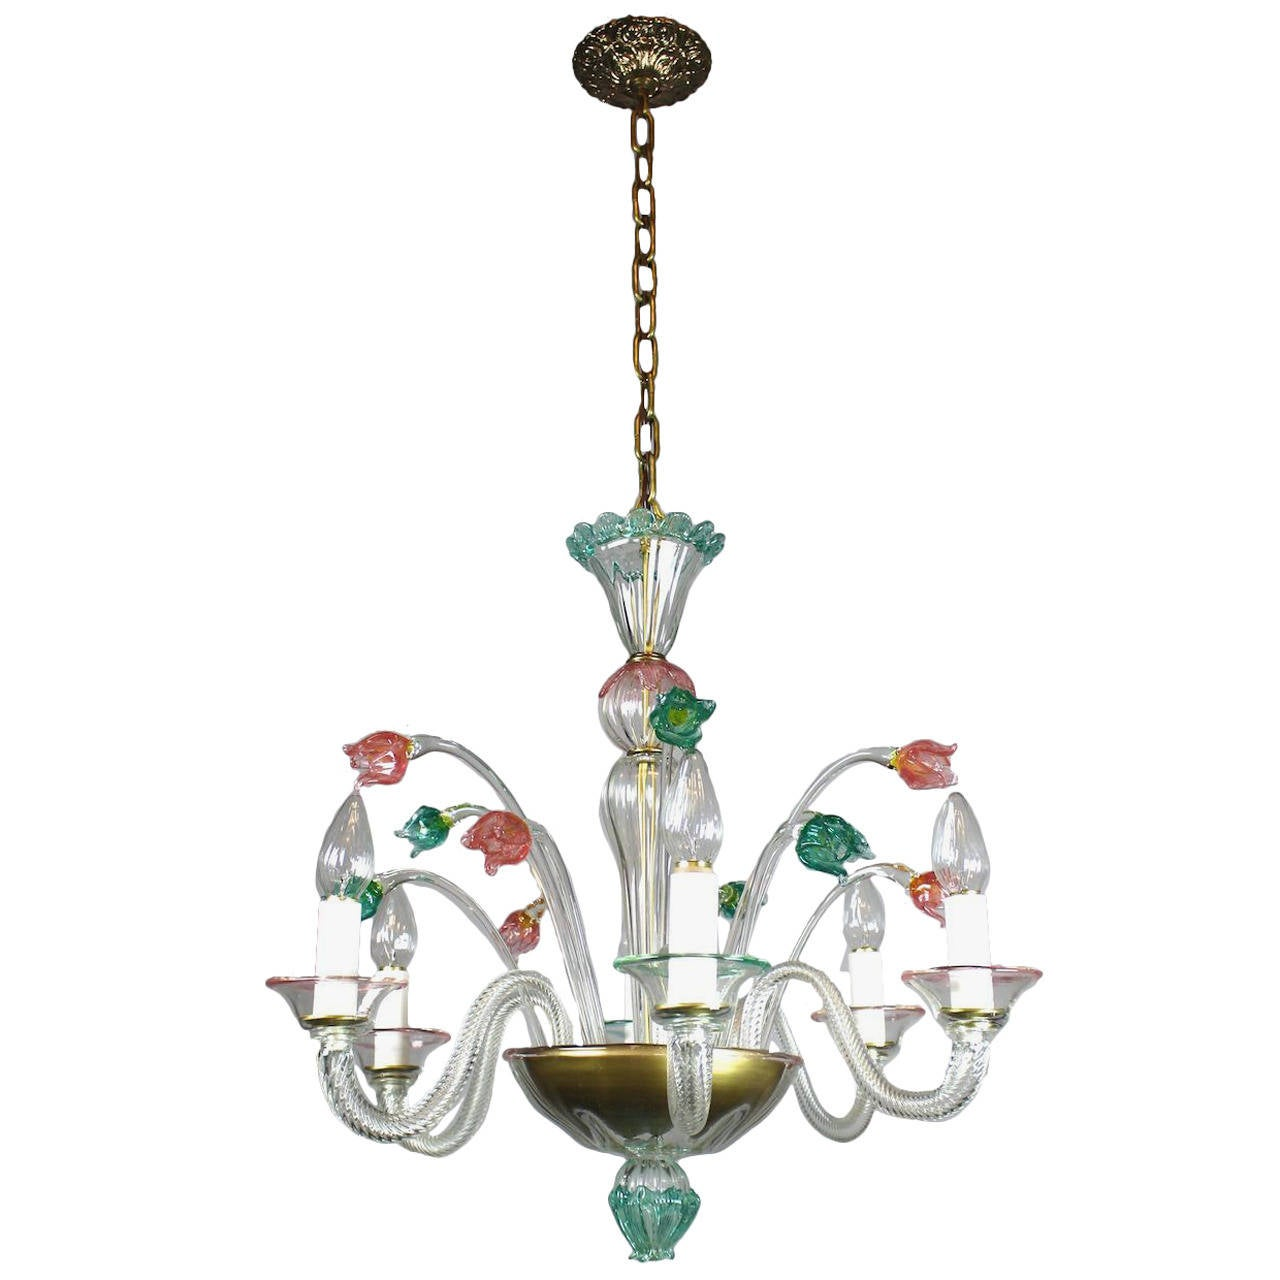 Murano glass six light chandelier circa 1955 for sale at 1stdibs - Circa lighting chandeliers ...